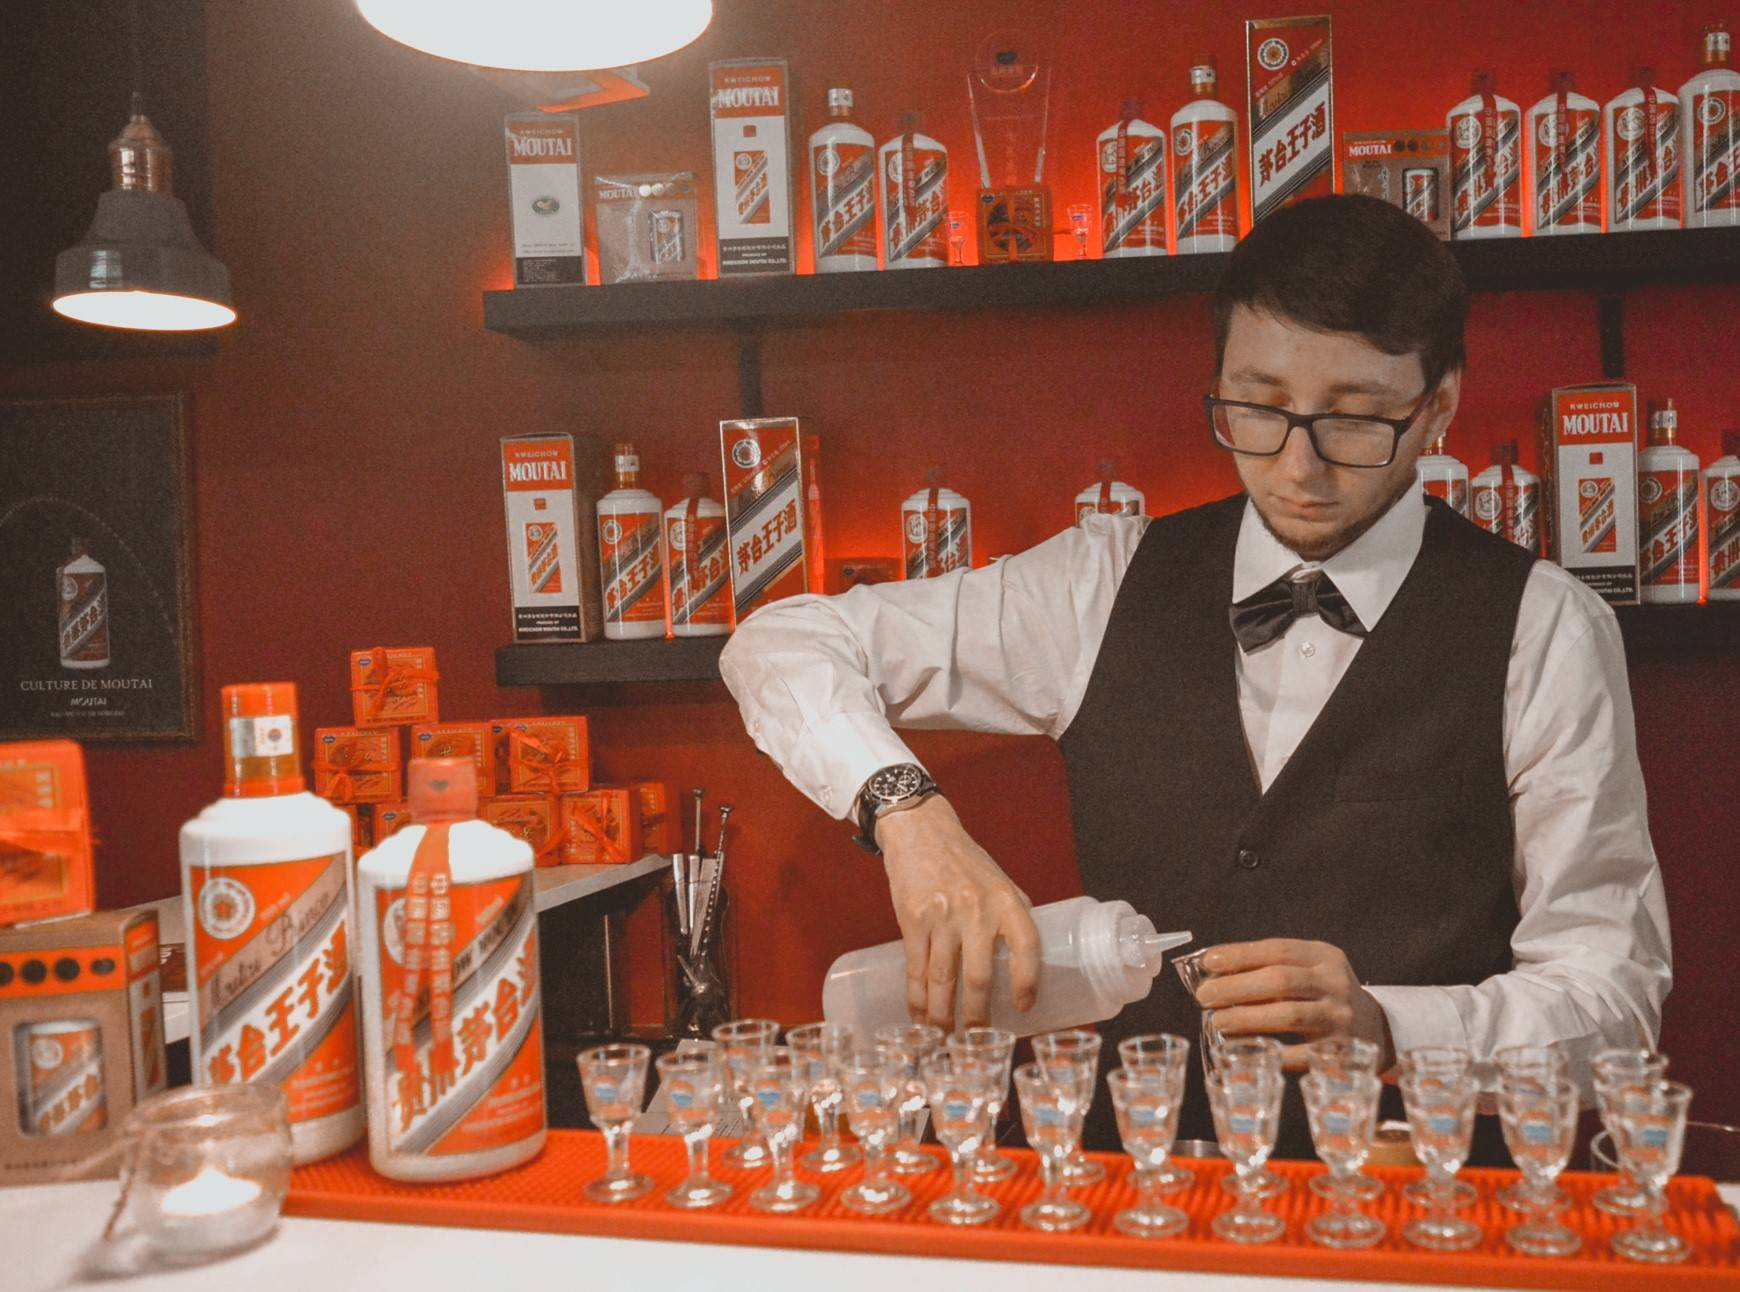 Bartender at the Moutai Bar in the Old Town of Tallinn, Estonia